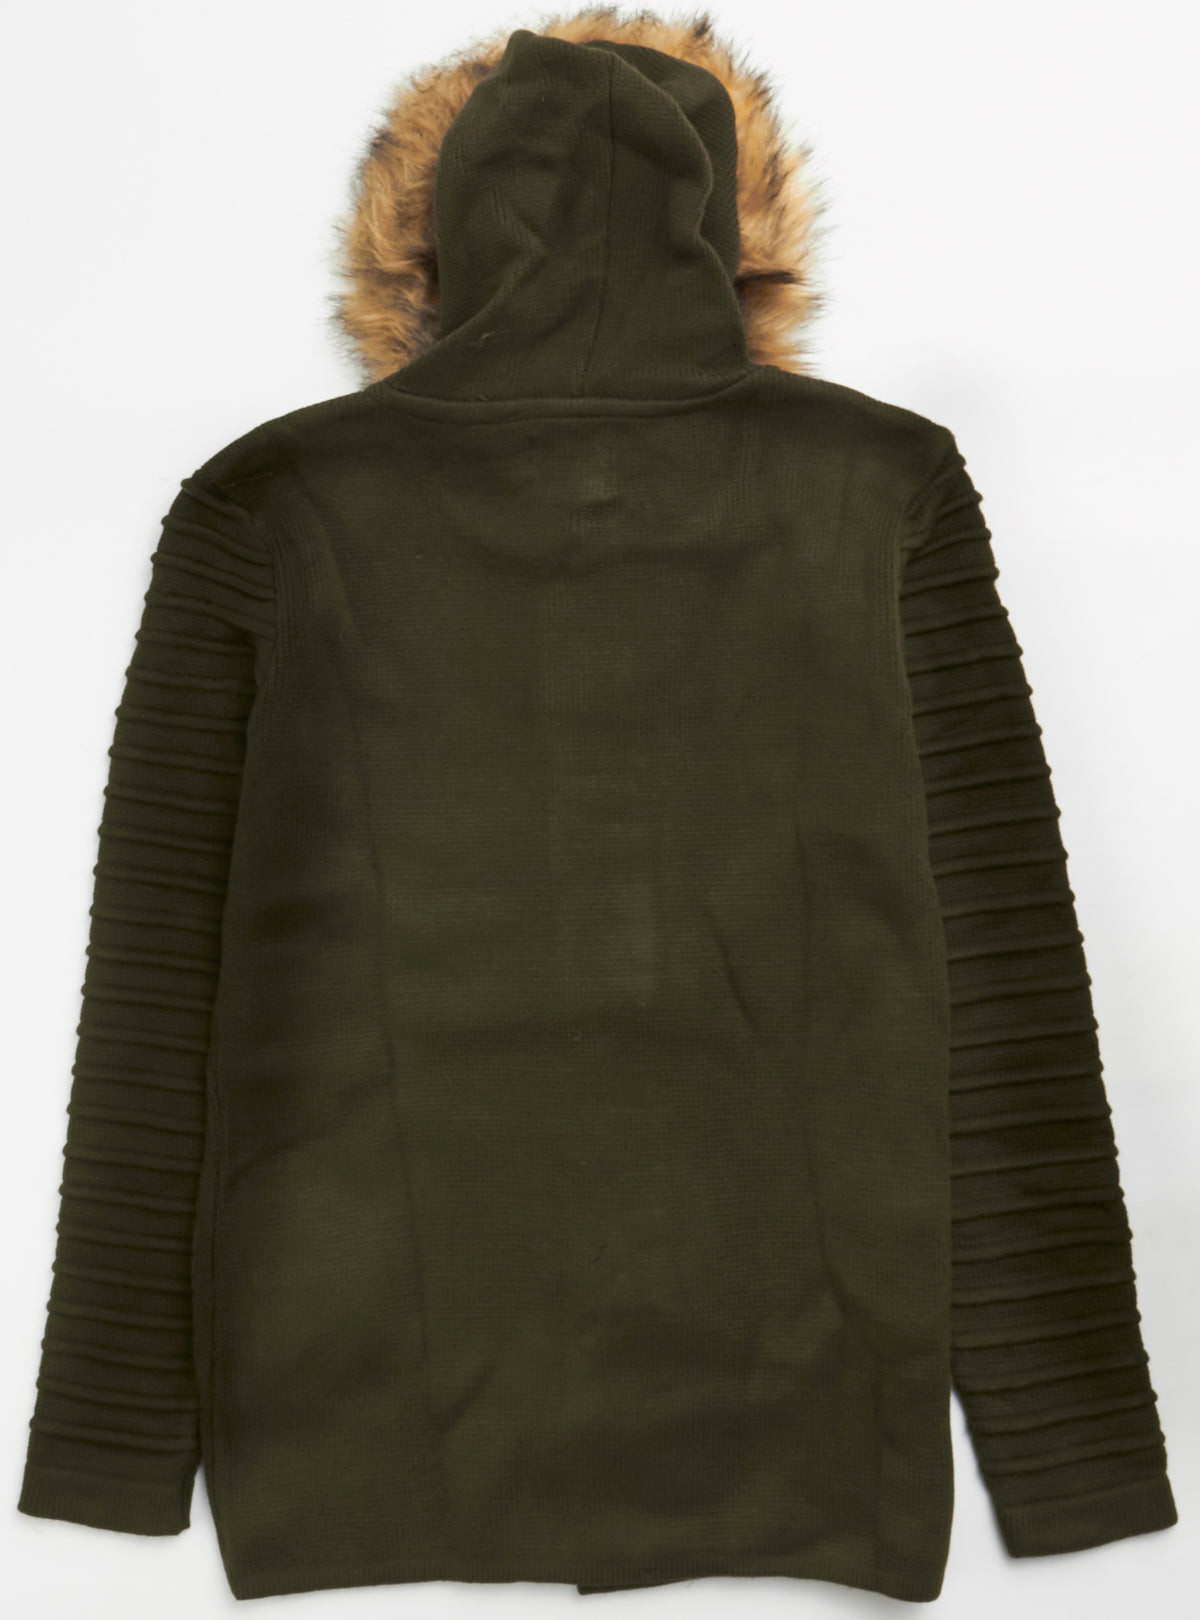 One In A Million Sweater - Fur - Olive - S2020